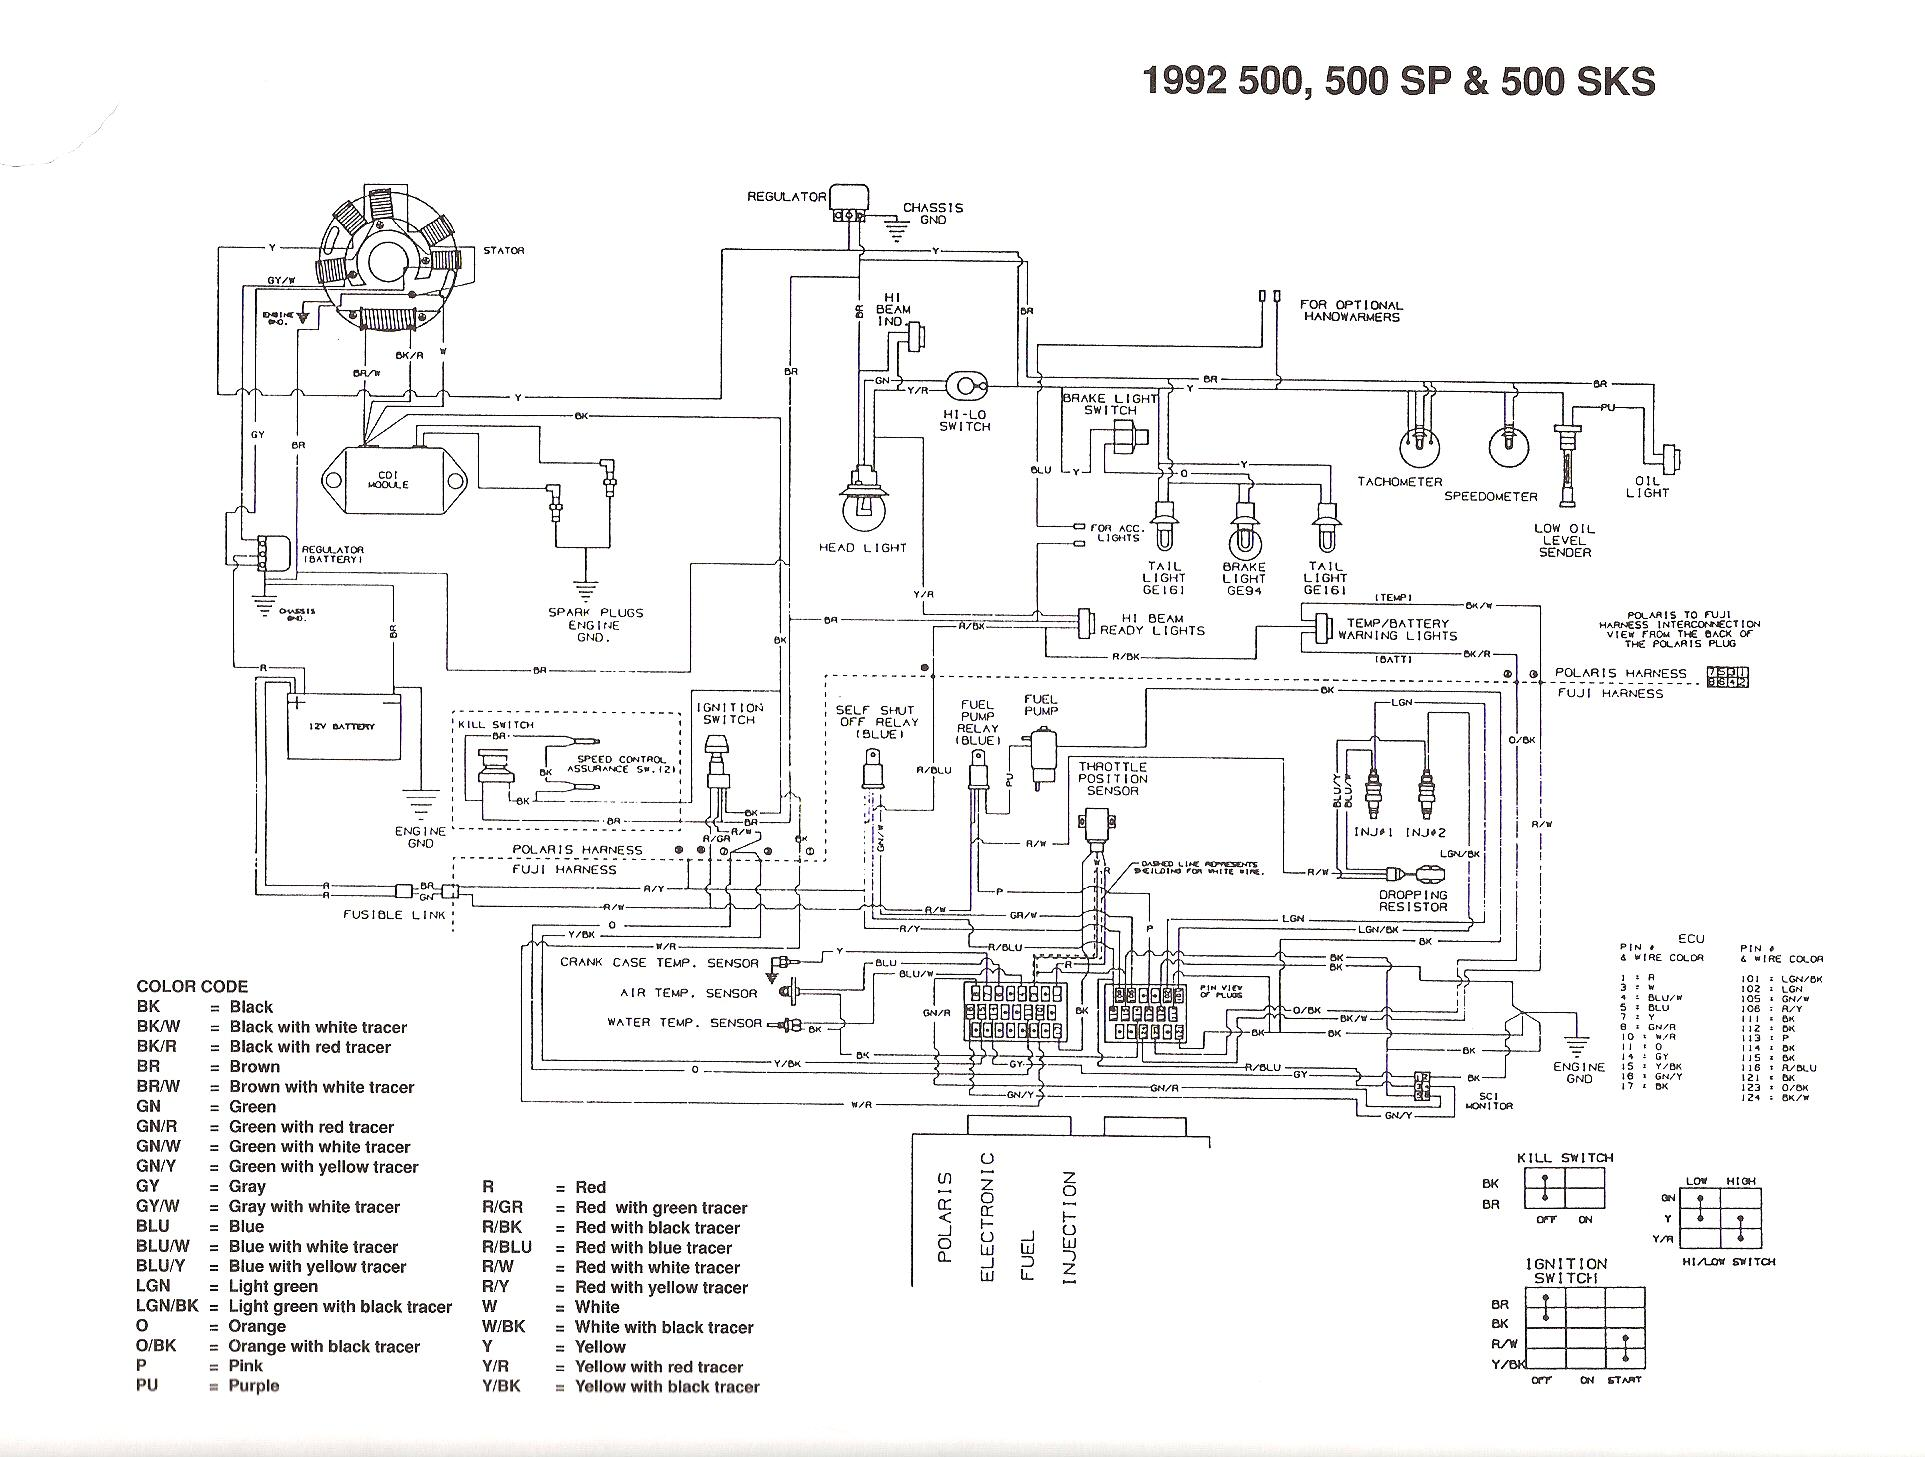 2007 Polaris Sportsman 800 Wiring Diagram. Diagrams